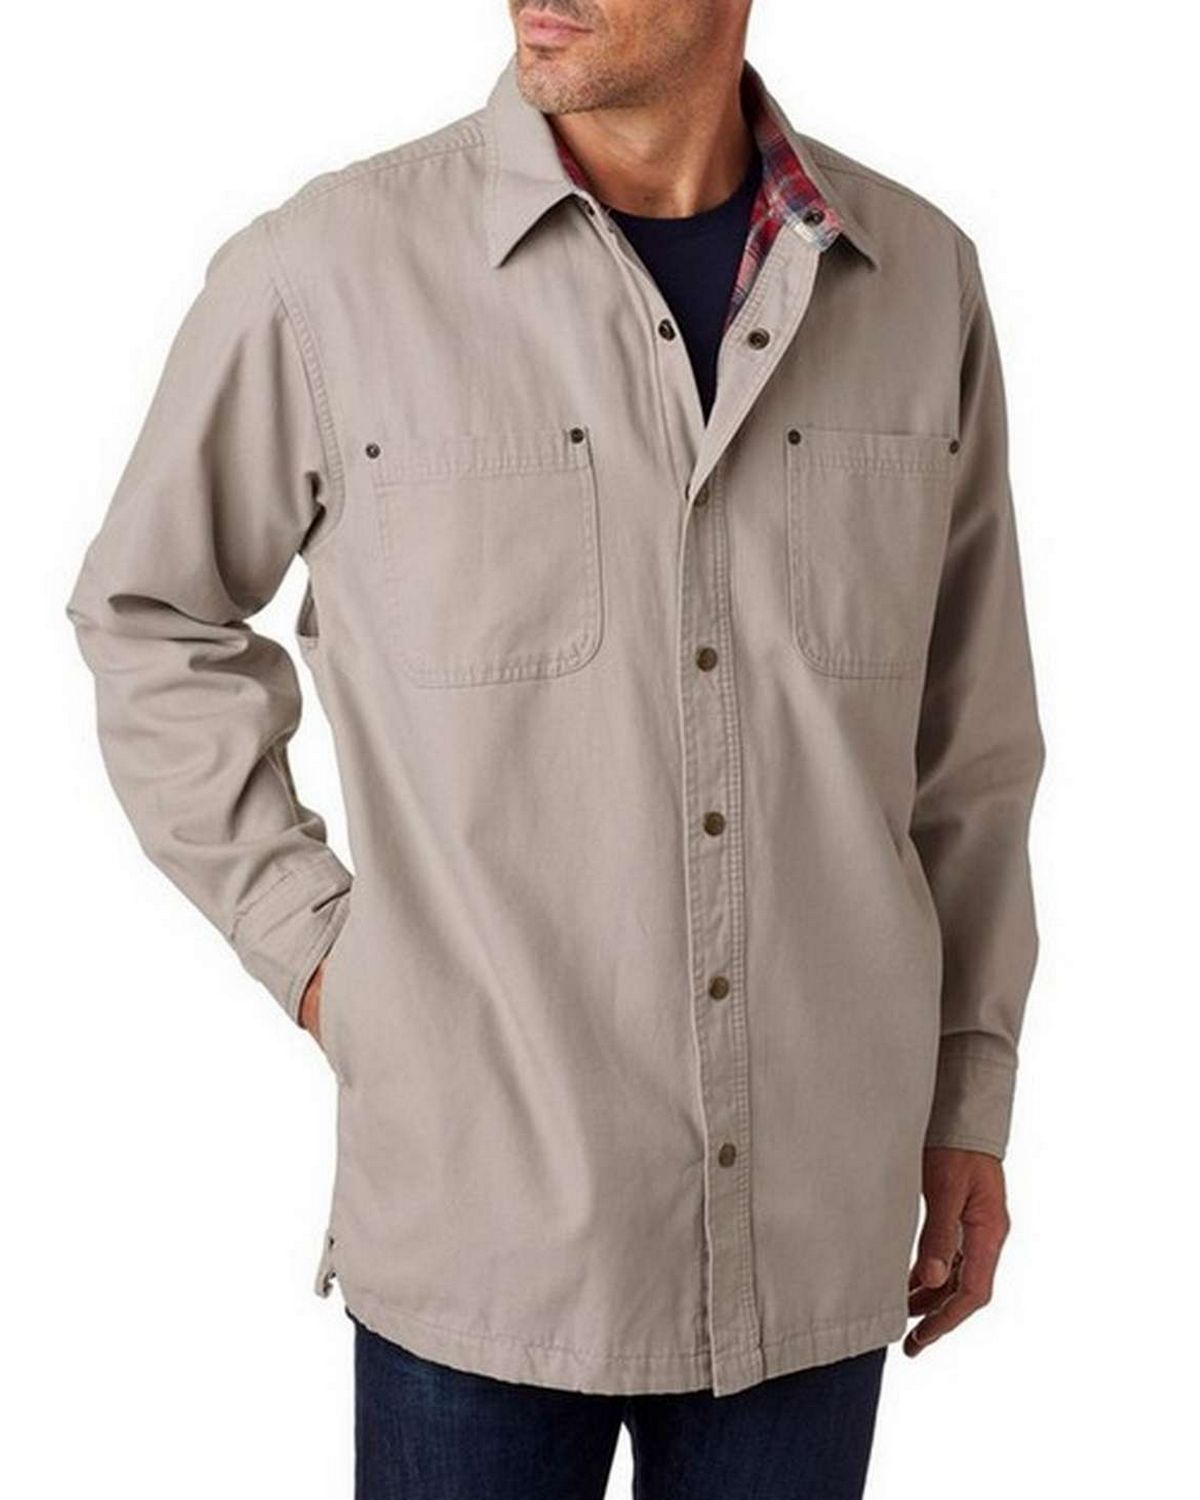 Backpacker BP7006 Mens Canvas Shirt Jacket with Flannel Lining